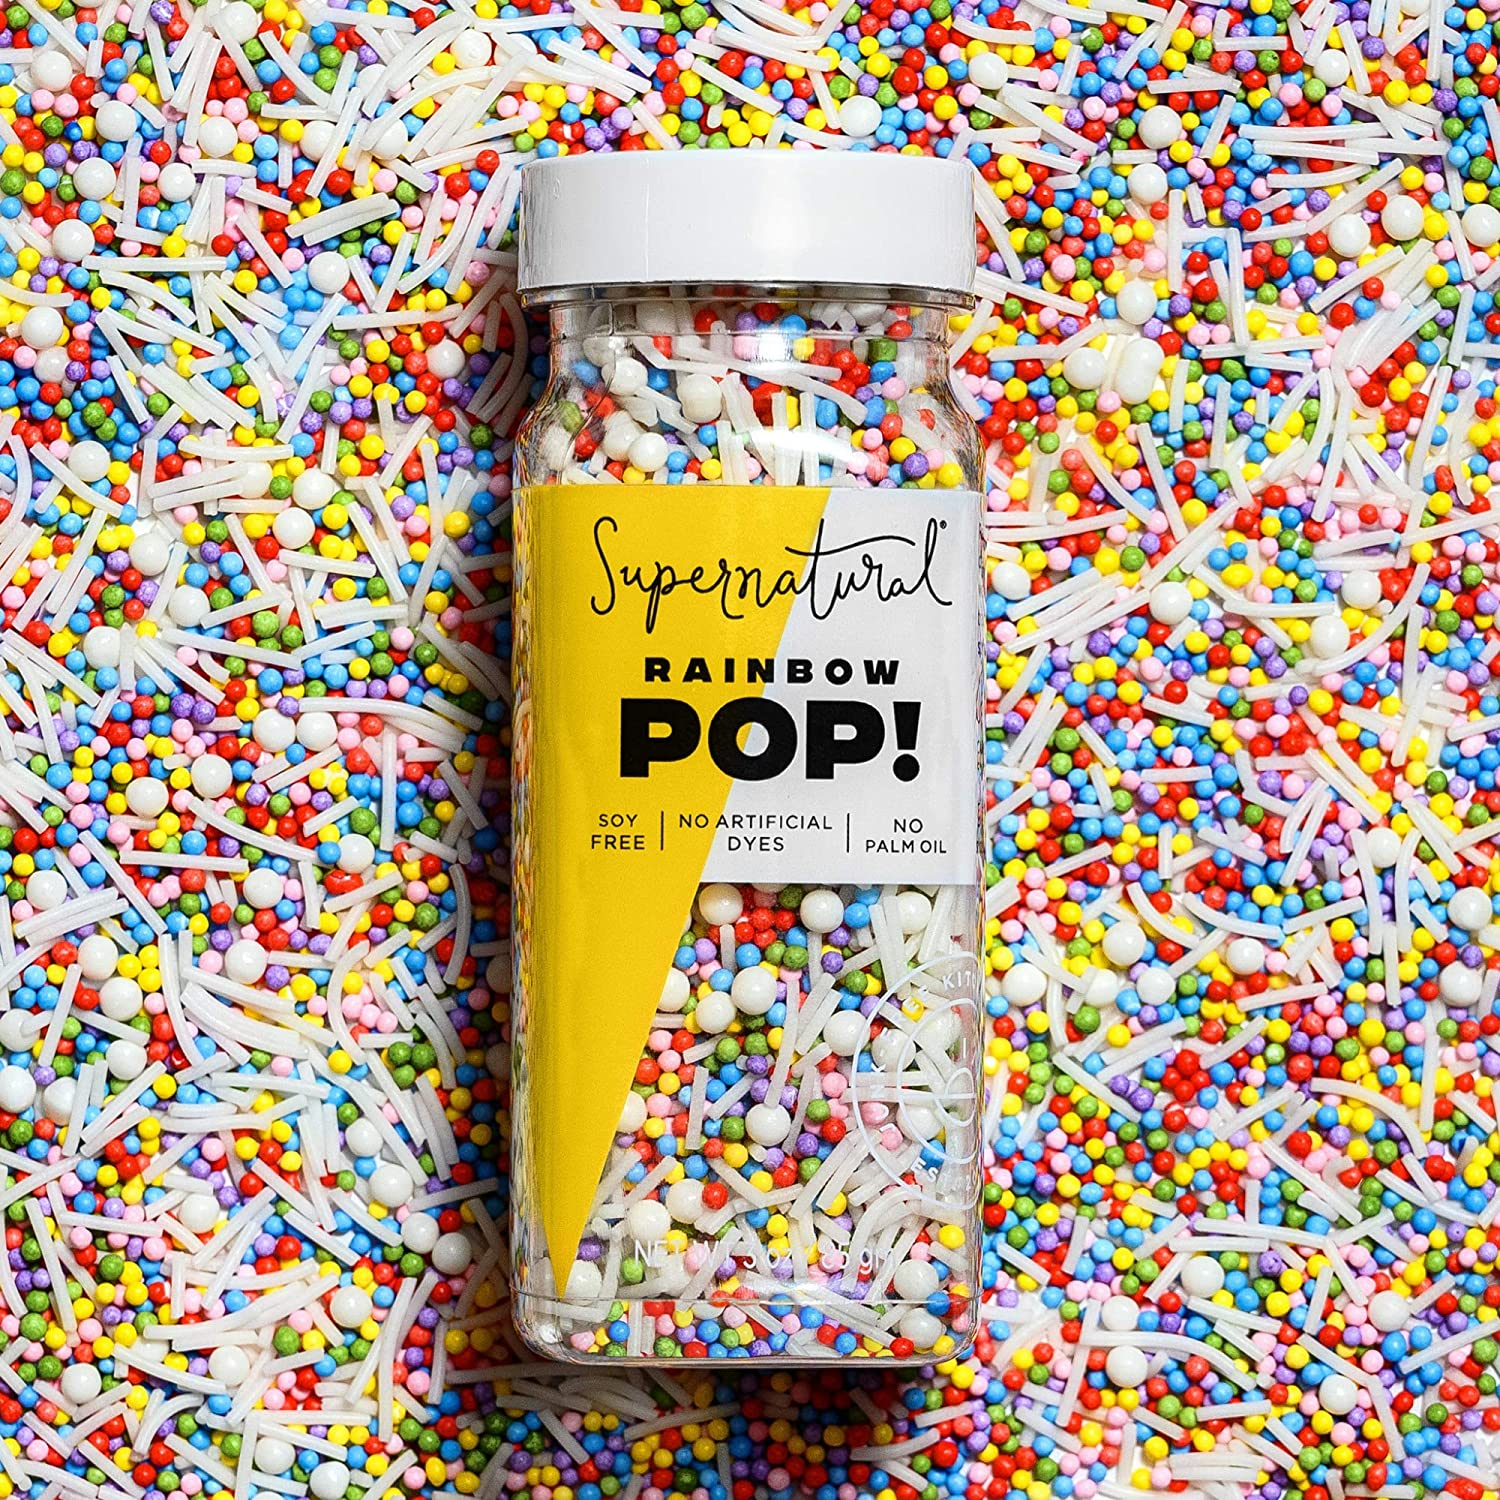 Rainbow Pop! Sprinkles by Supernatural, Nonpareil Sprinkles, Gluten-Free, Vegan, No Artificial Dyes, Soy Free for Healthy Baking, 3 oz